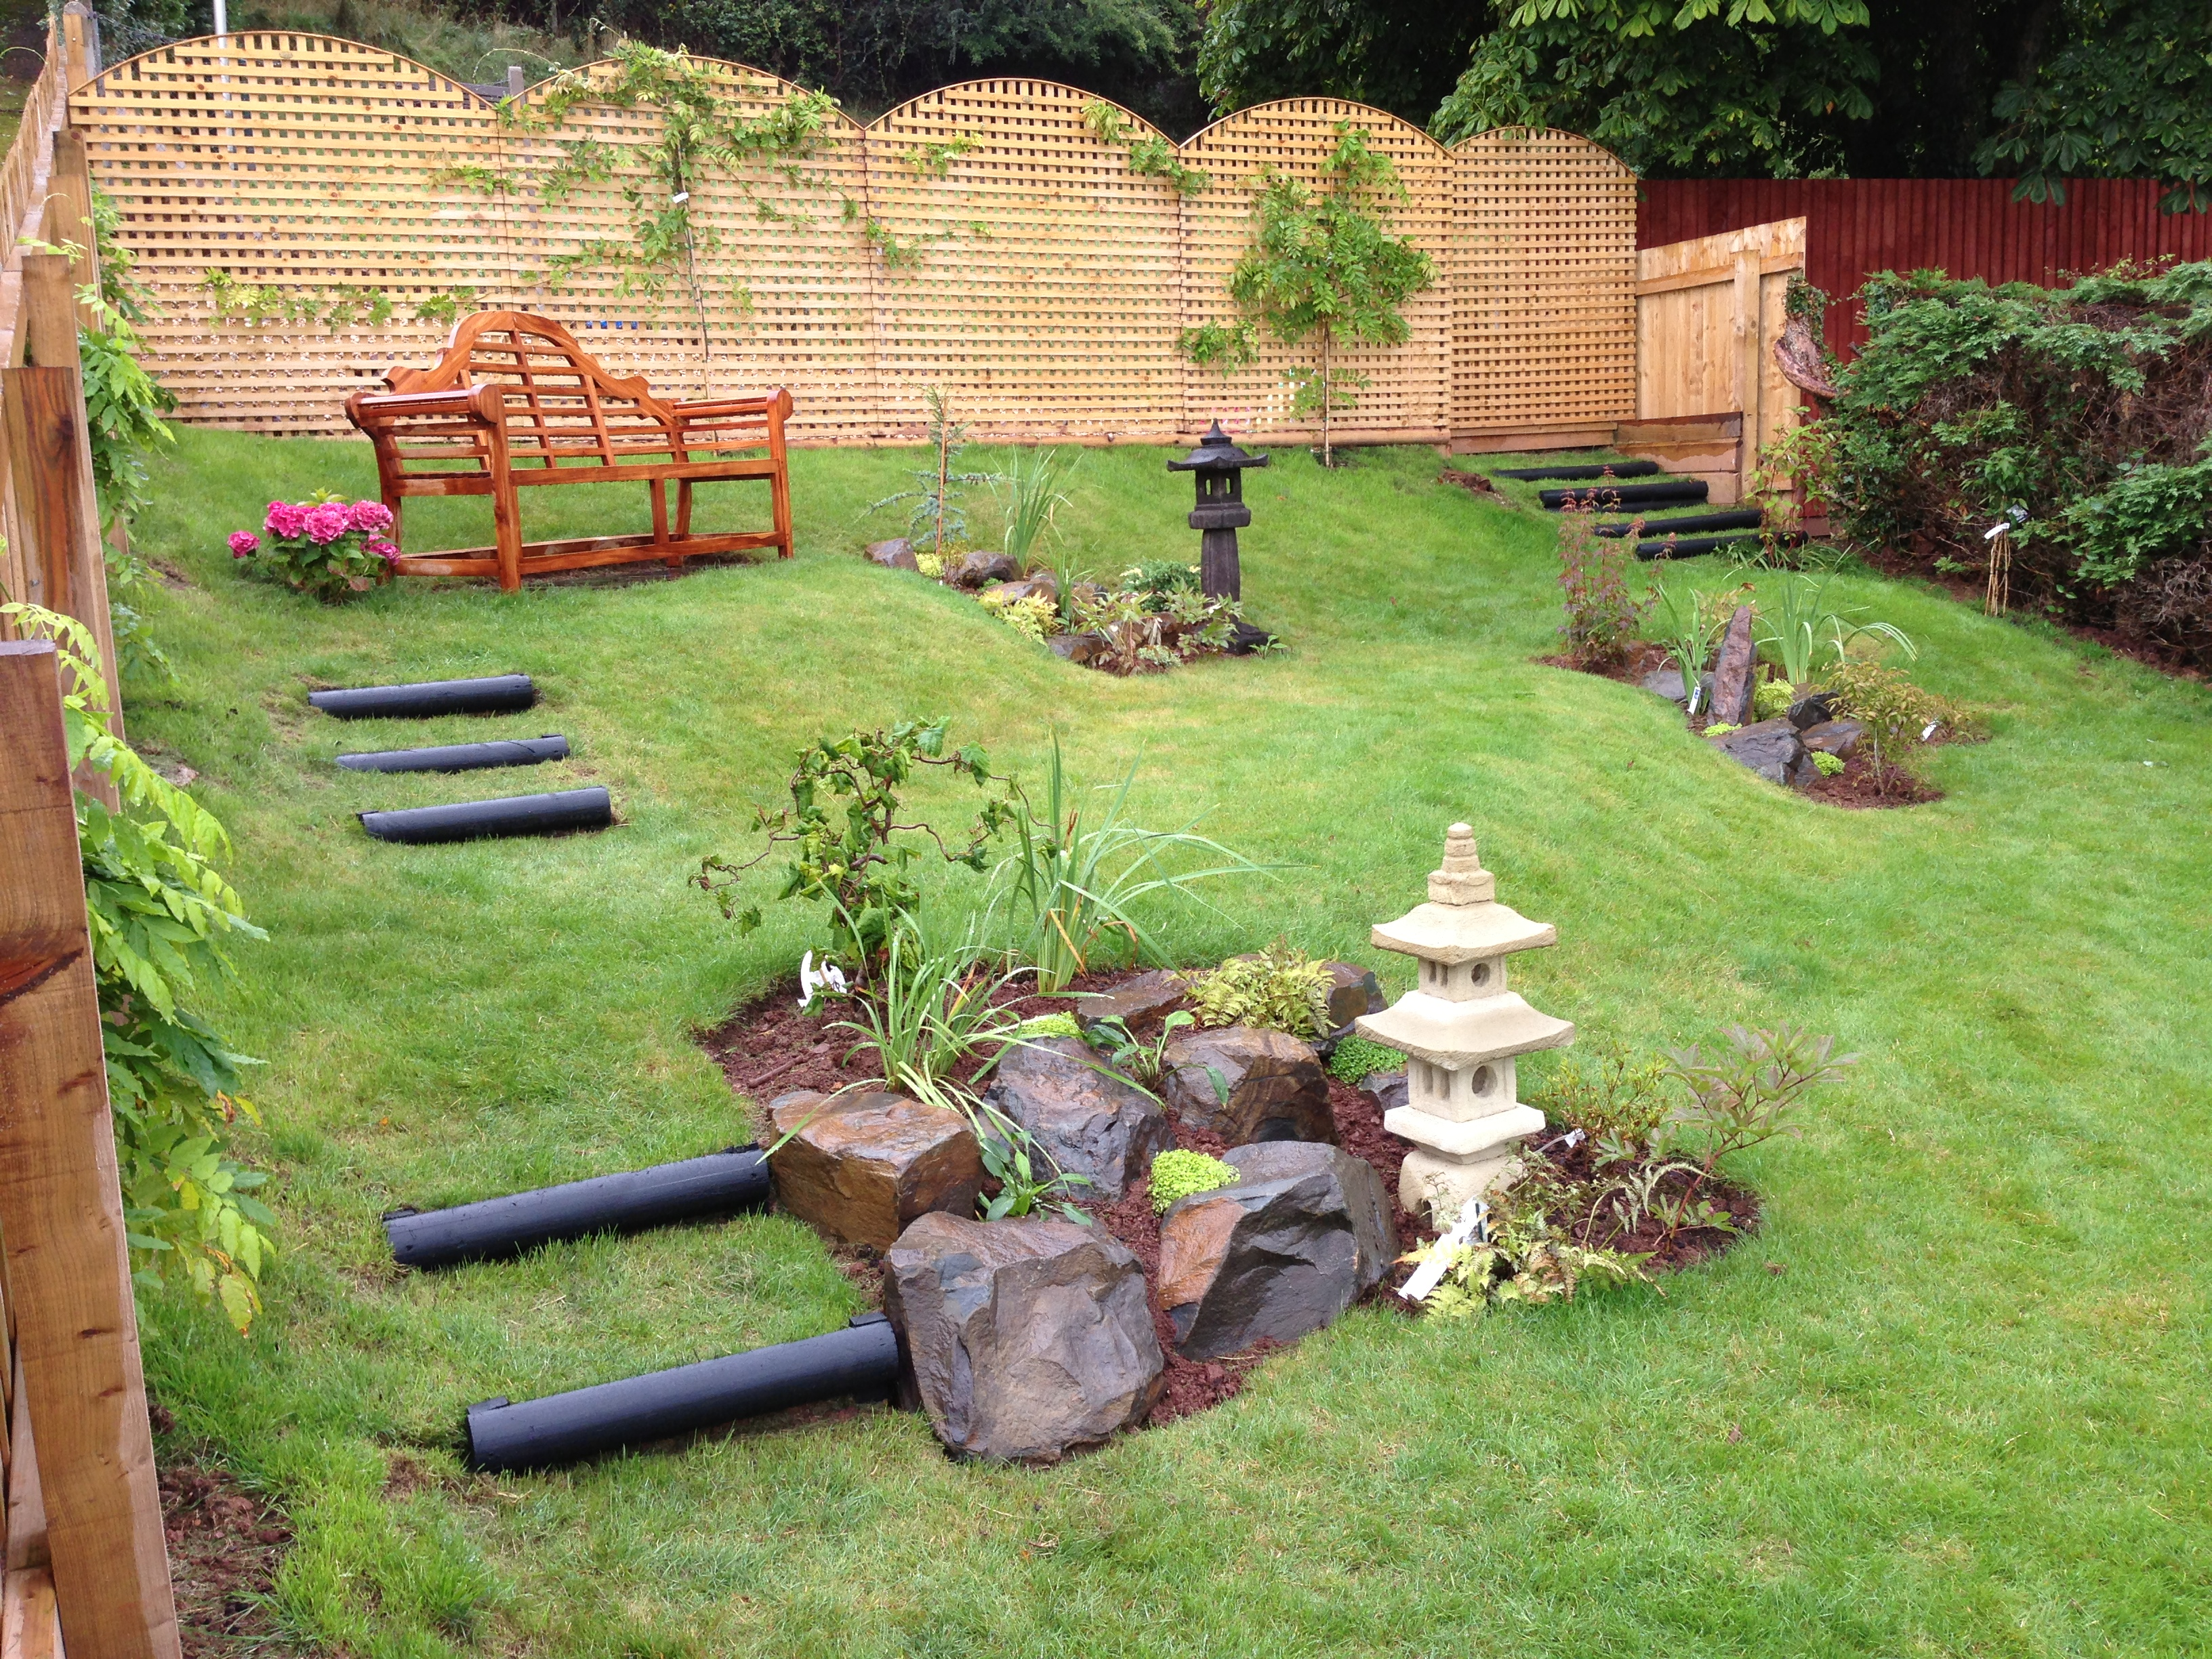 Exeter japanese garden designer plant a seed garden design for Your garden design